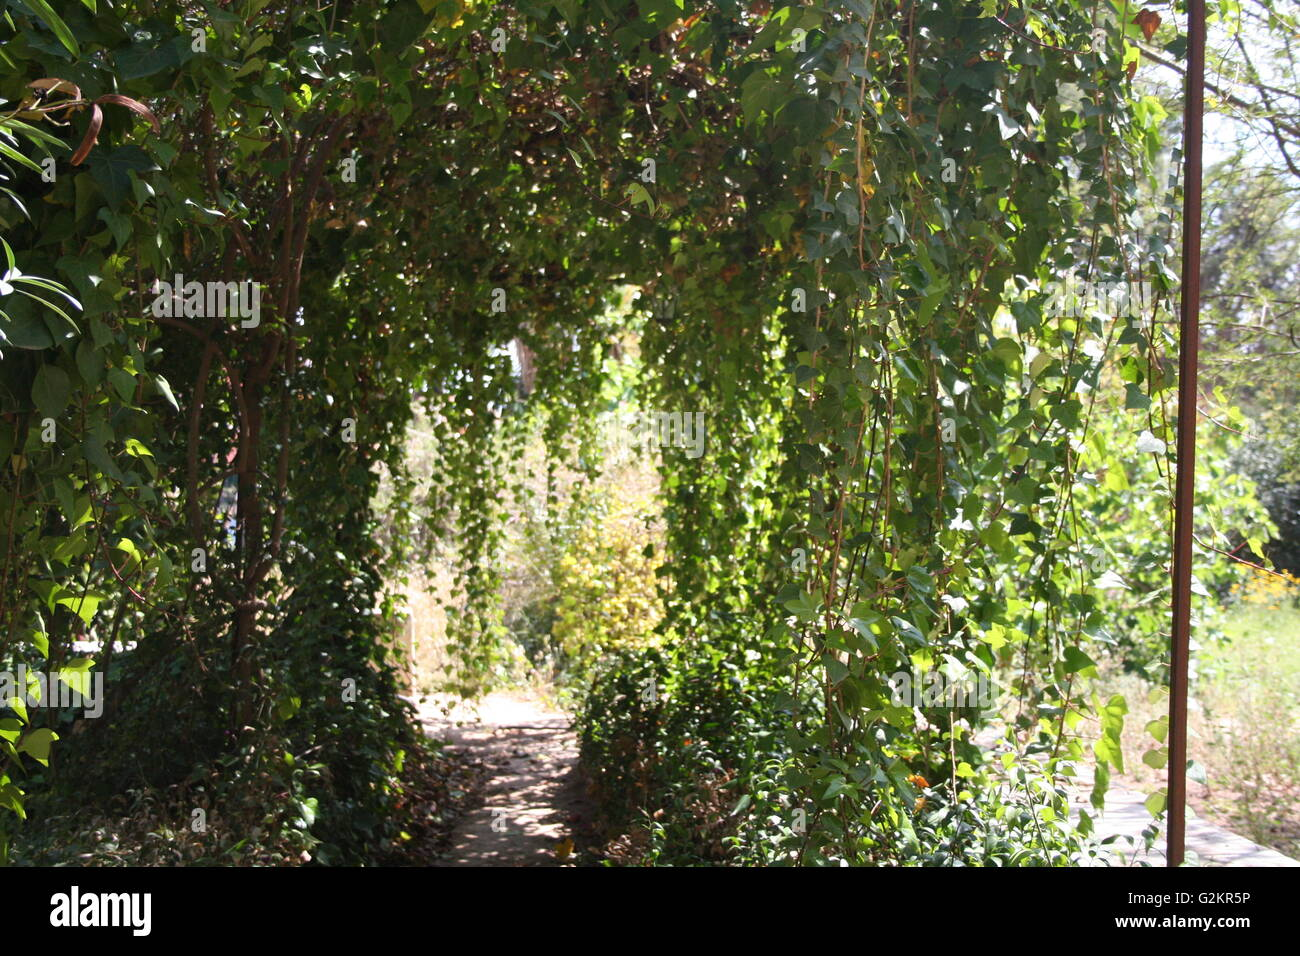 Trees hanging in a pathway - Stock Image